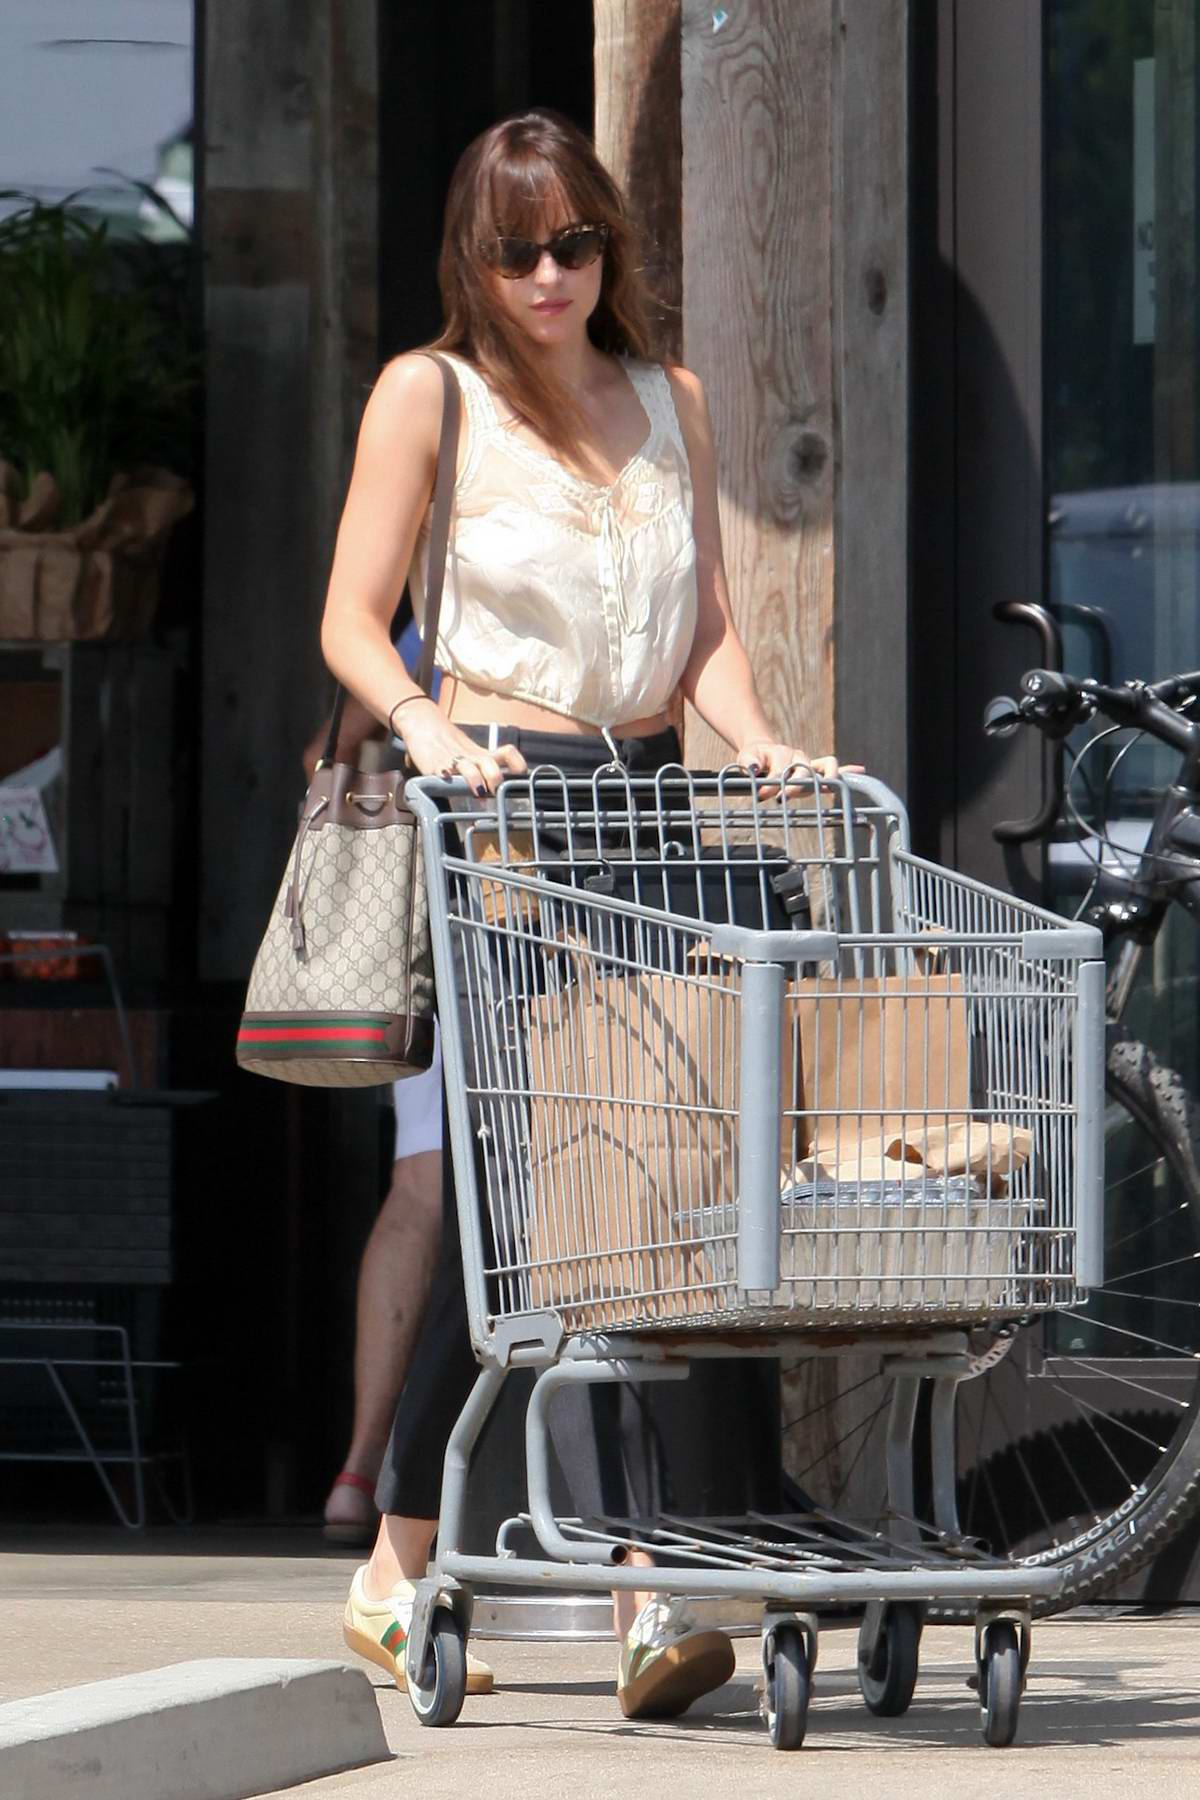 Dakota Johnson enjoys an iced coffee while pushing a shopping cart at Vintage Grocers in Malibu, California